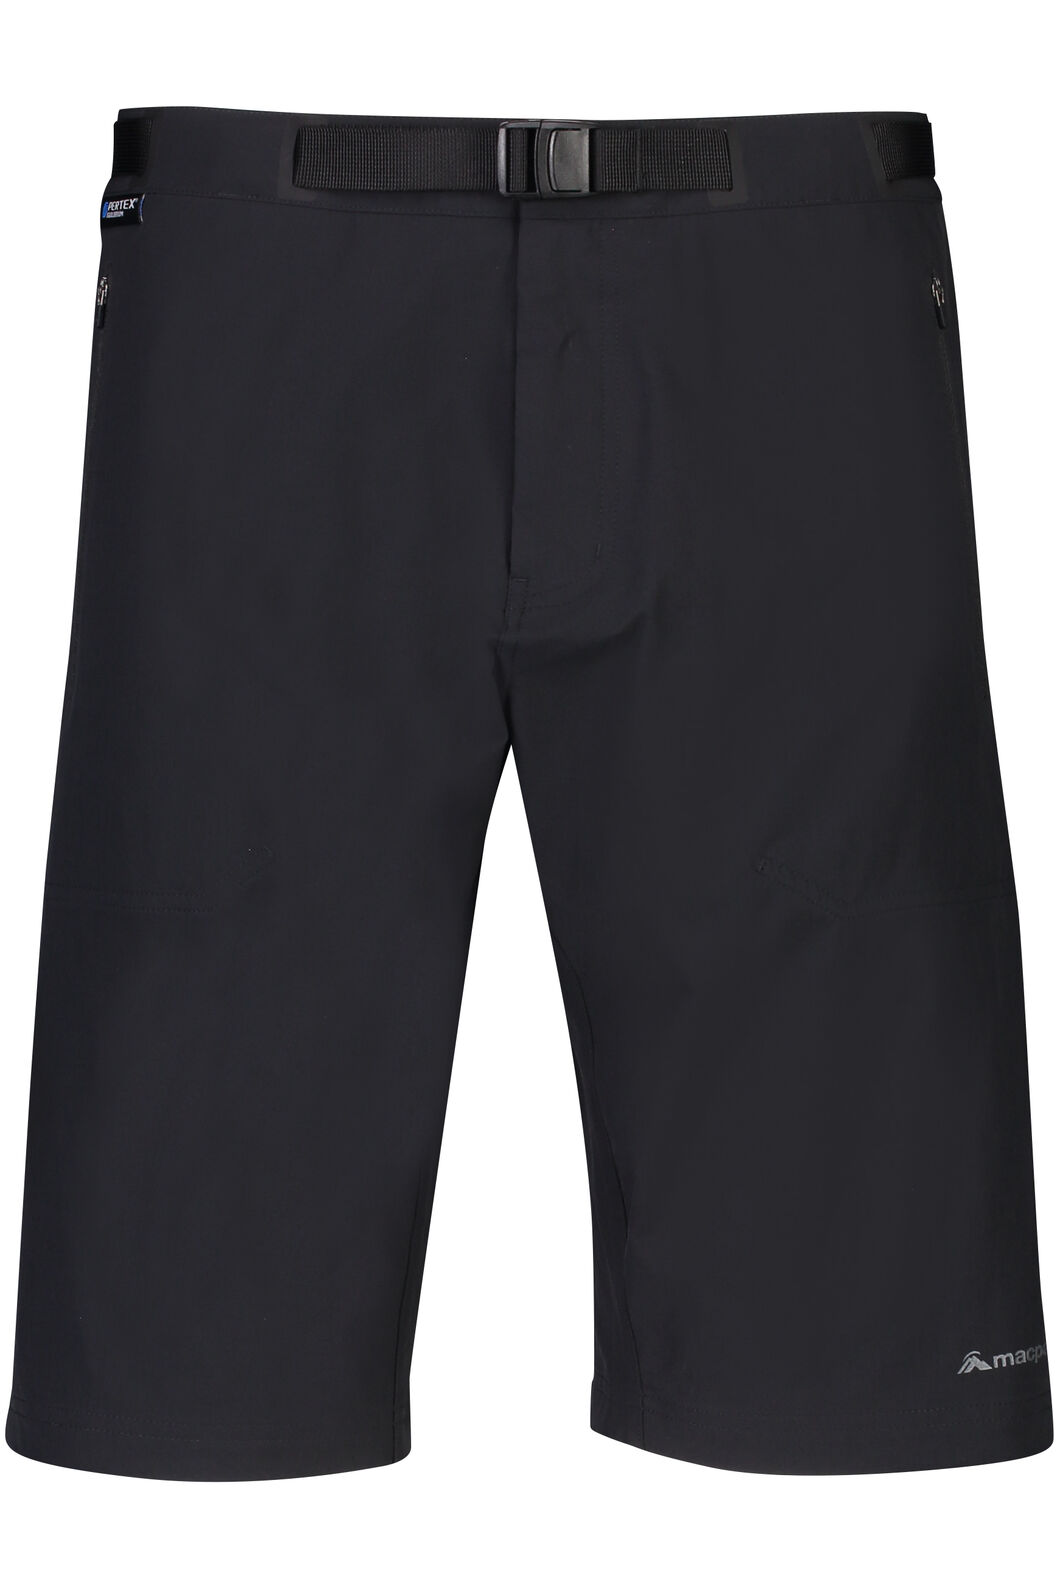 Macpac Trekker Pertex Equilibrium® Softshell Shorts - Men's, Black, hi-res